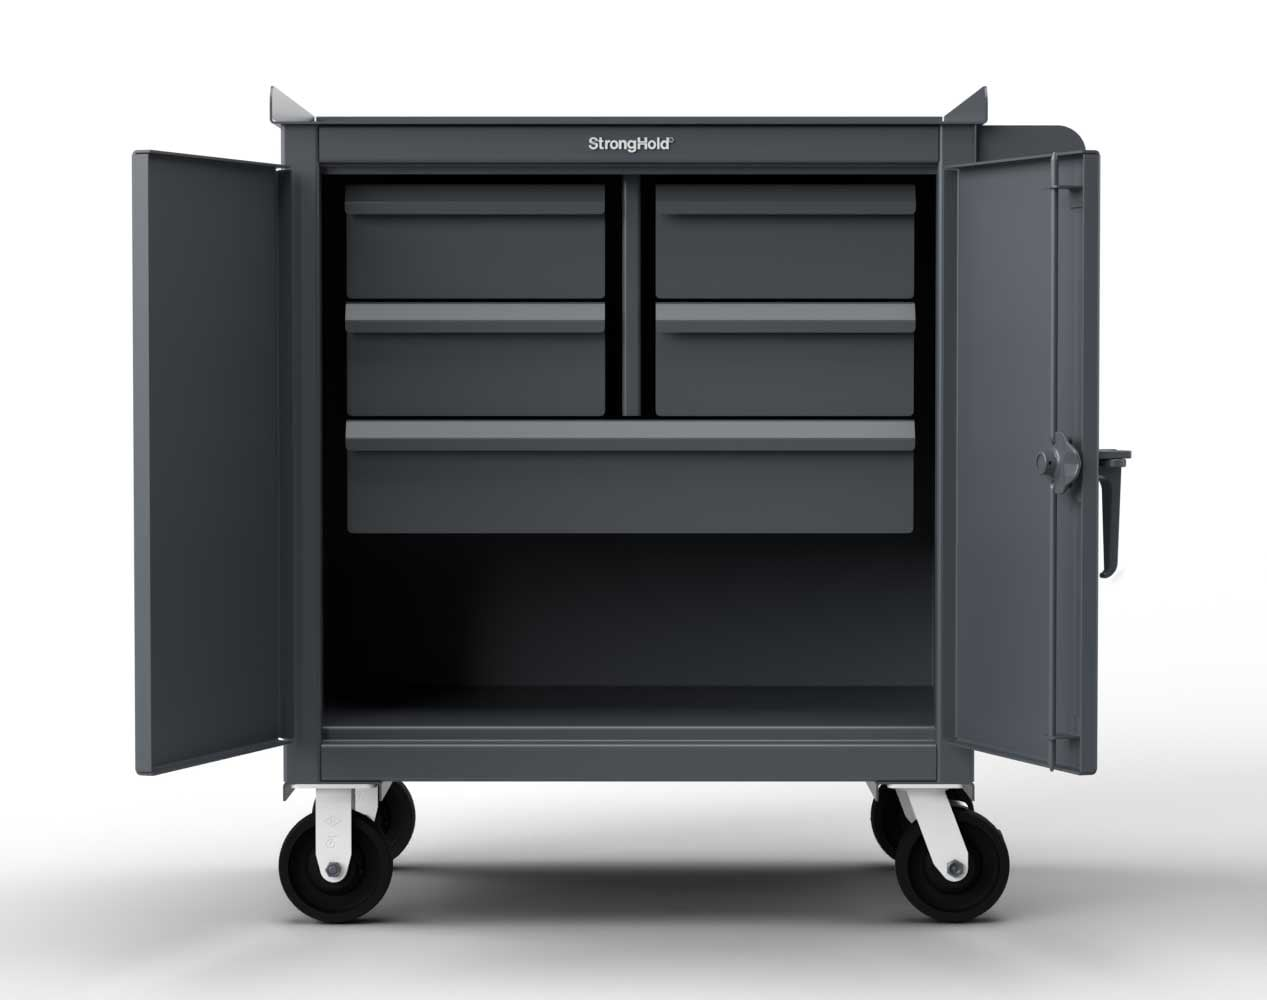 Extra Heavy Duty 12 GA Mobile Tool Cart with 7 GA Steel Top, 4 Half-Width Drawers – 36 in. W x 24 in. D x 44 in. H